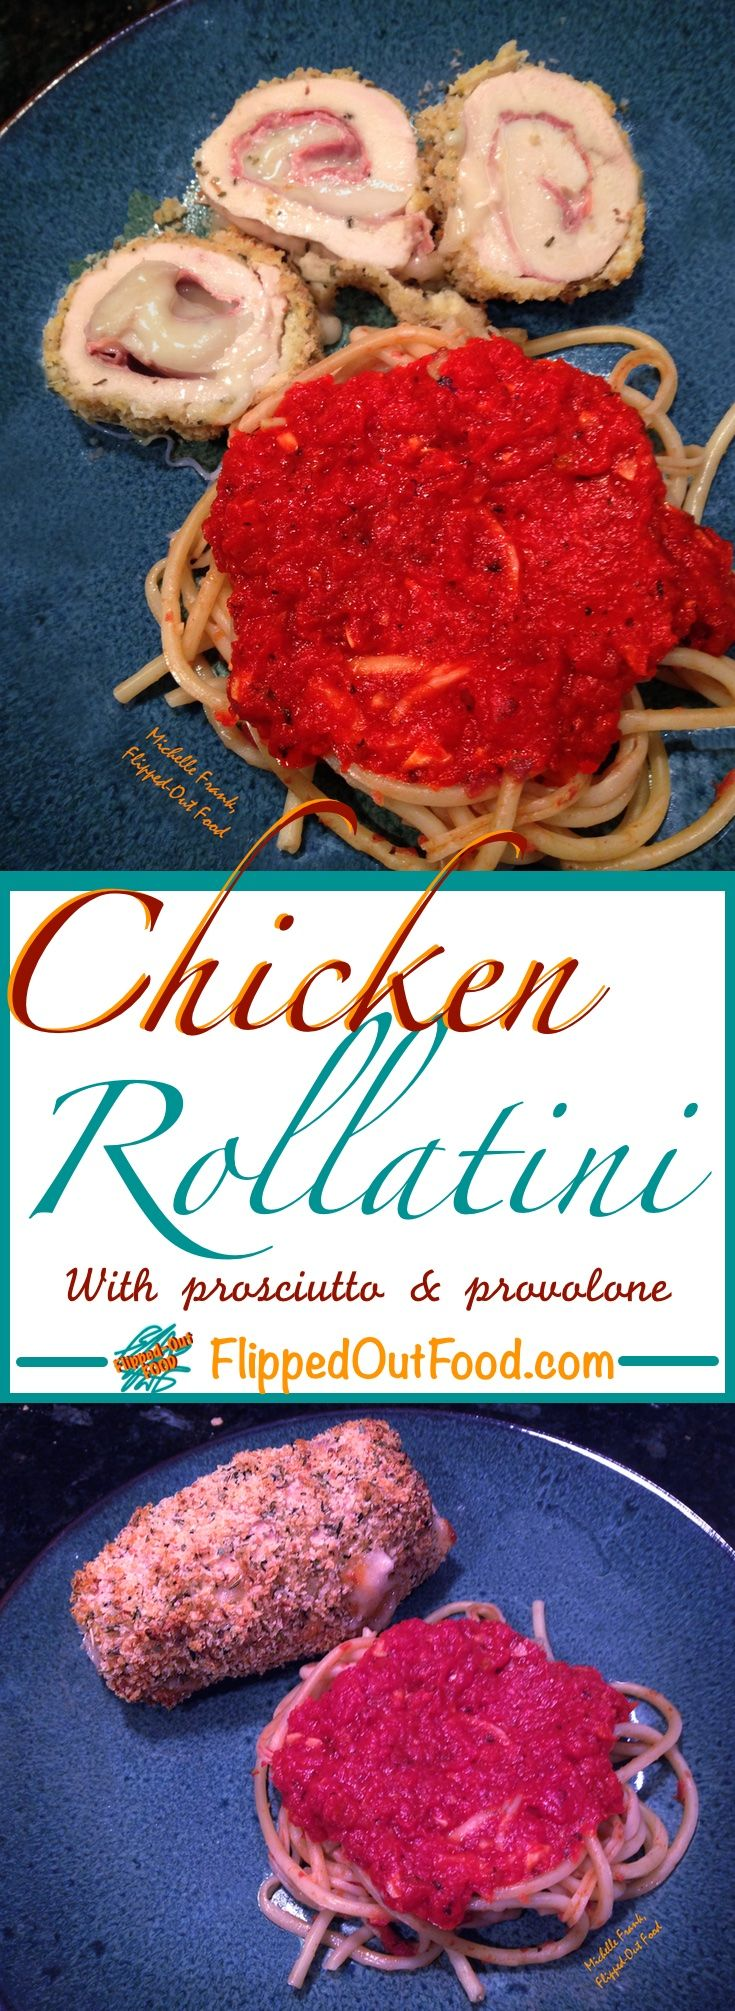 Chicken Rollatini make a romantic meal for two. Crunchy on the outside and ooey-gooey delicious inside. Perfect for Valentine's Day! via @FlippedOutFood